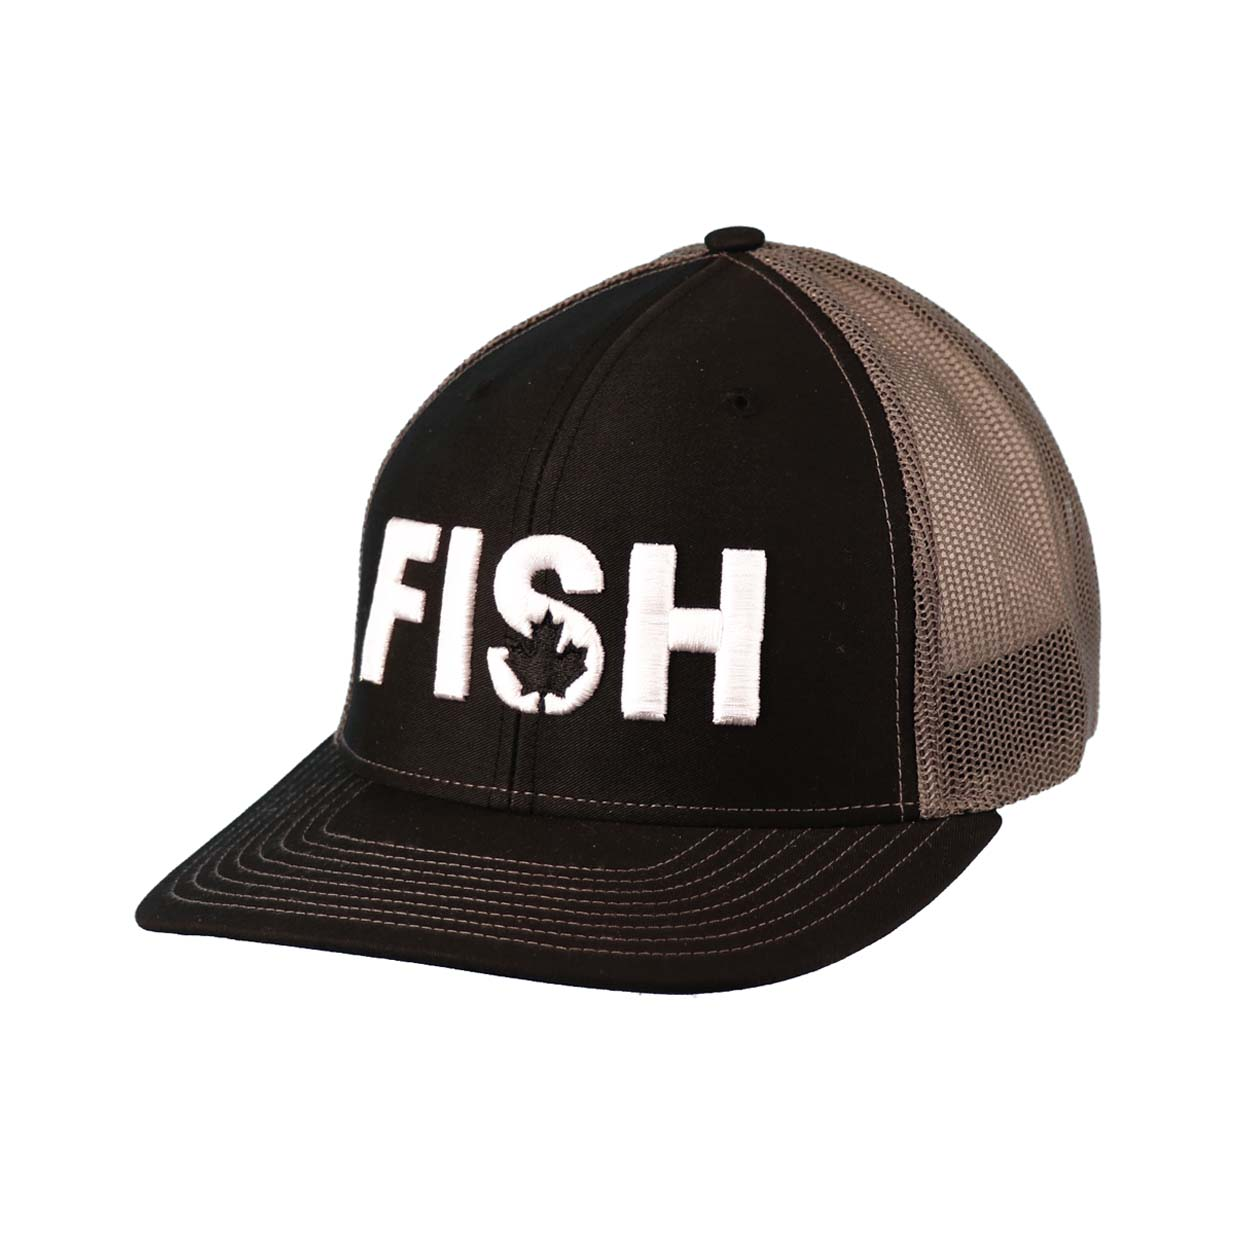 Fish Canada Classic Embroidered Snapback Trucker Hat Black/White